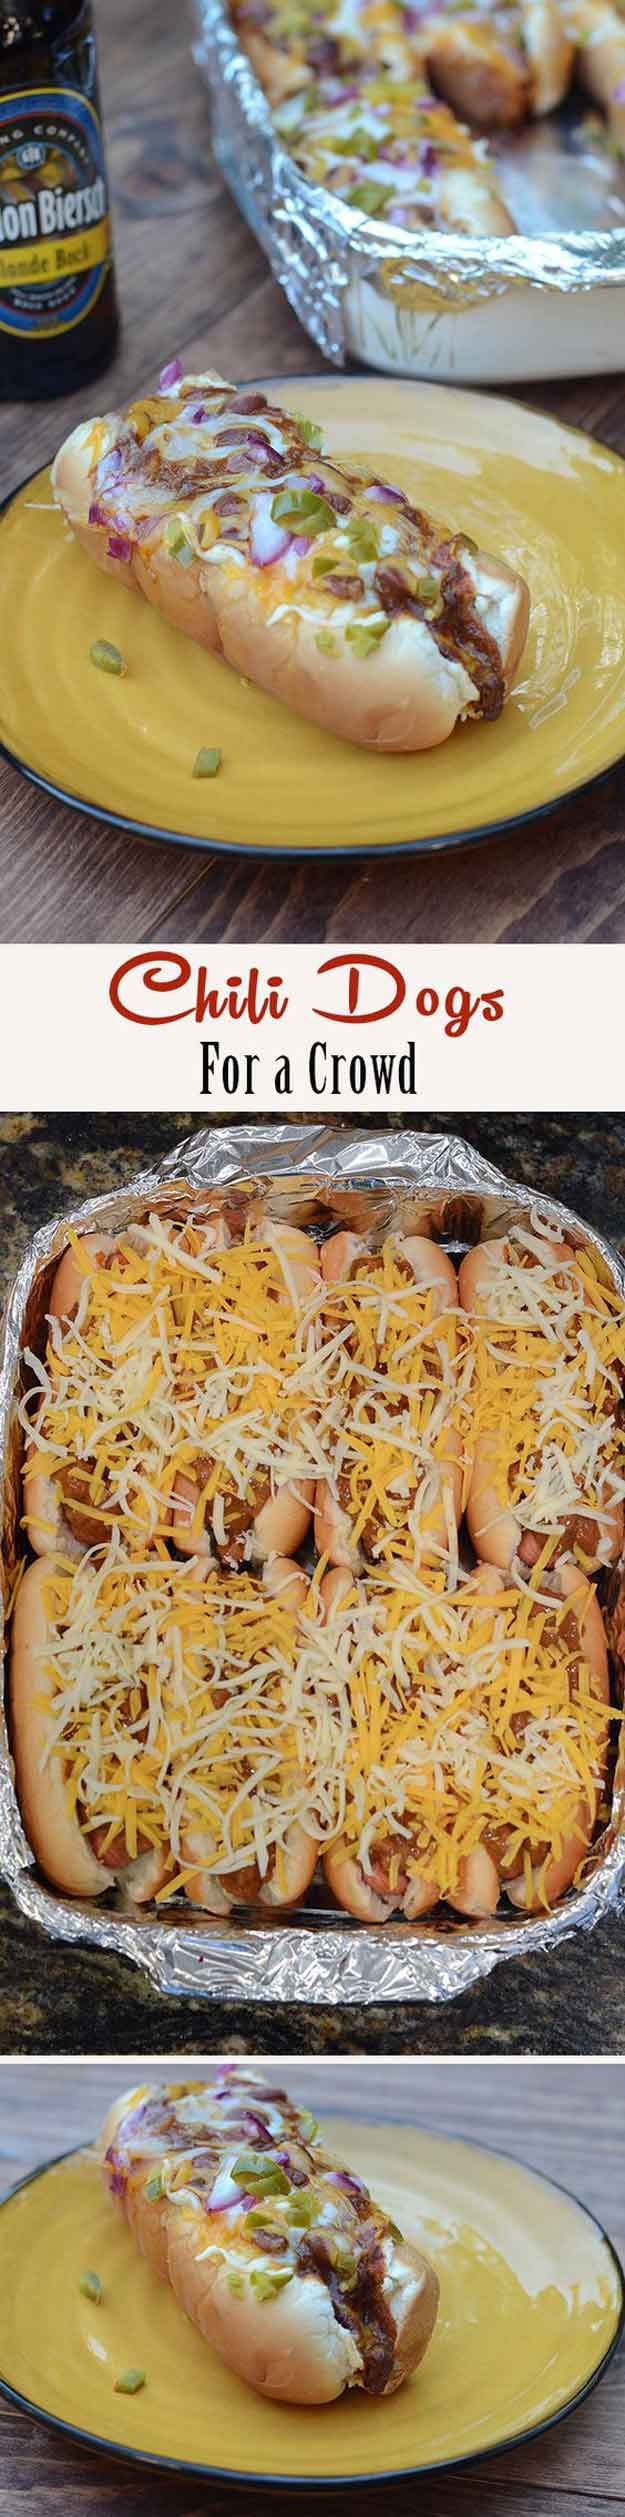 Chili Dogs for a Crowd | The Best Super Bowl Recipes For A Crowd by DIY Ready at http://diyready.com/super-bowl-food-ideas/